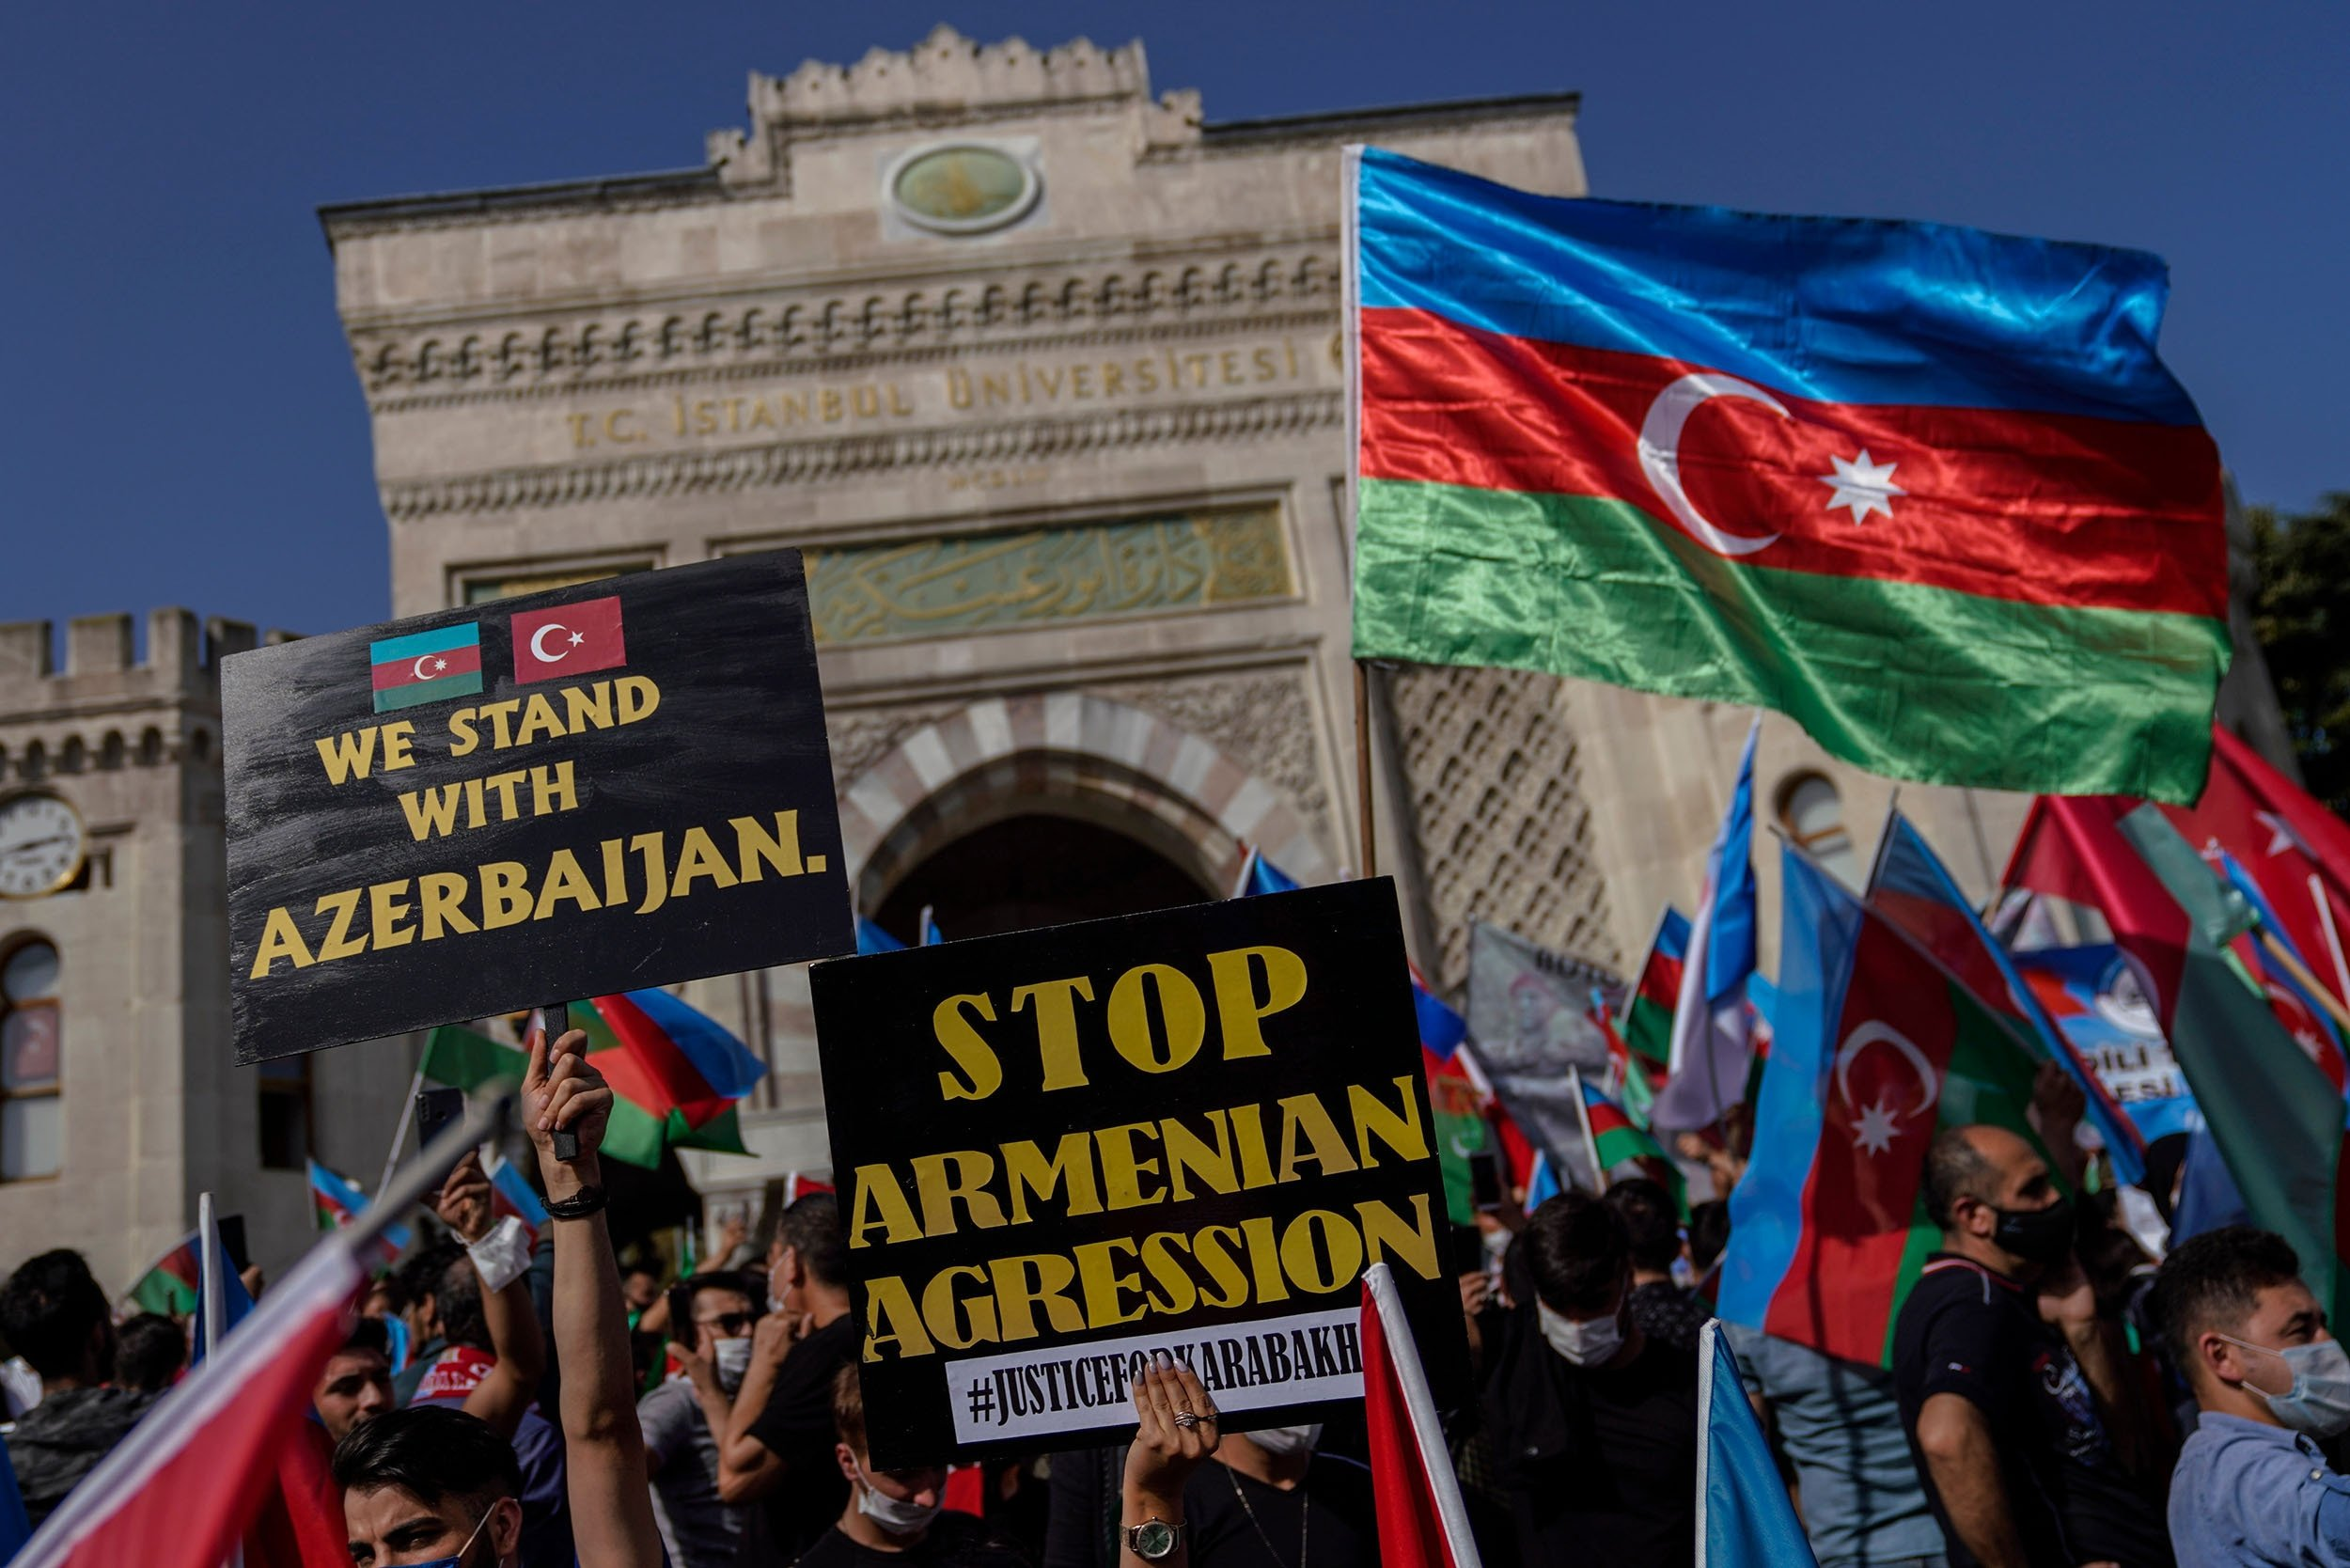 Demonstrators with Azerbaijan flags take part in a protest against Armenia, in Istanbul, Turkey, Oct. 4, 2020. (Shutterstock Photo)